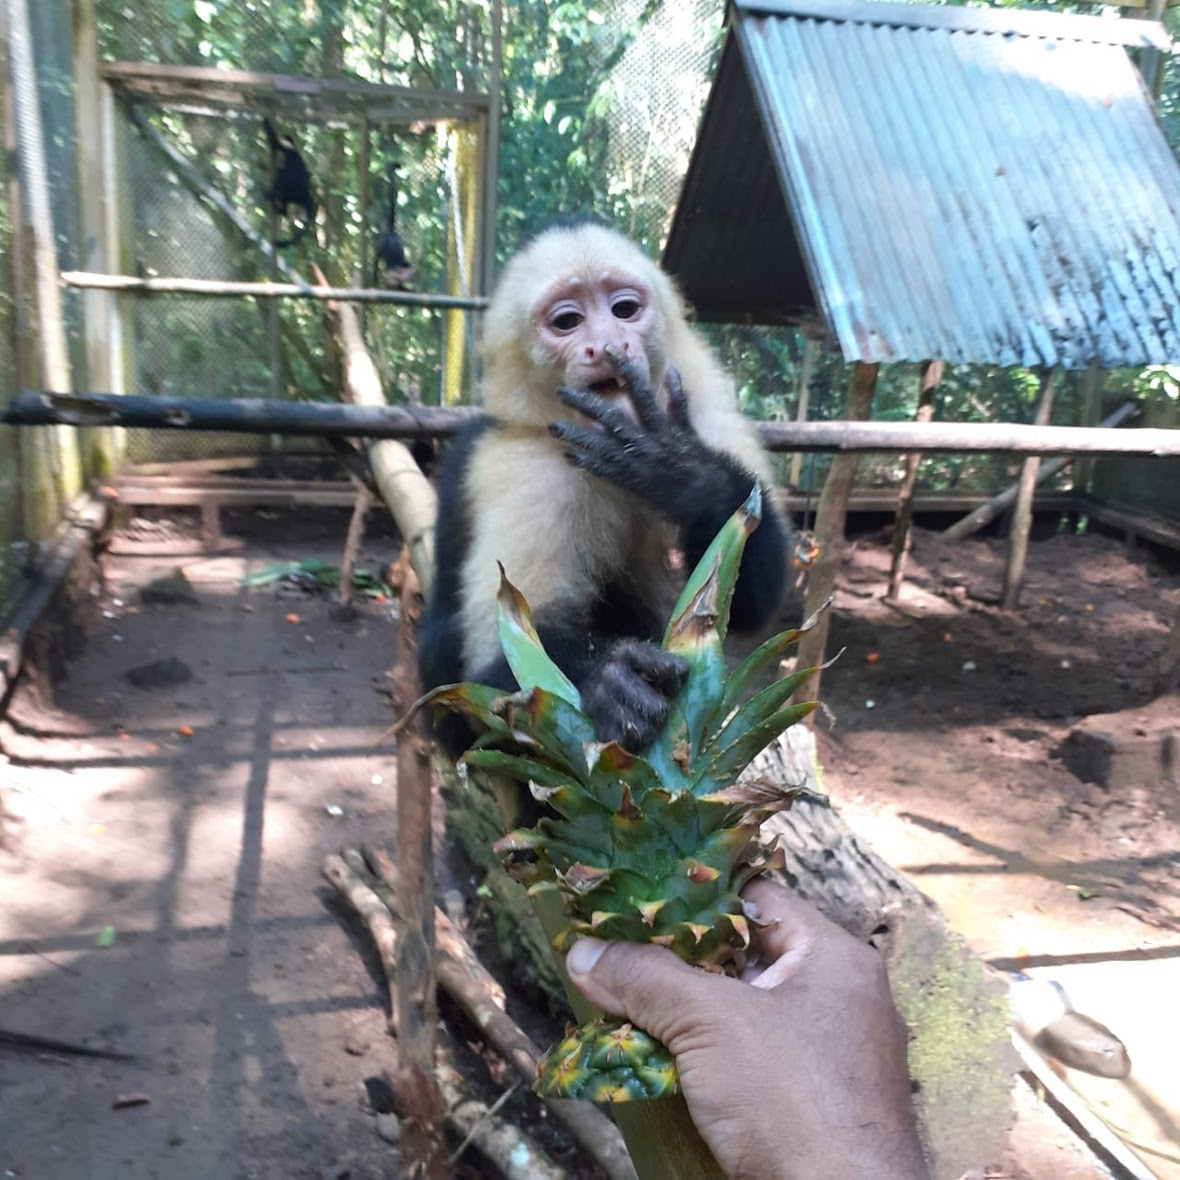 Capuchin holds pineapple head and licks fingers